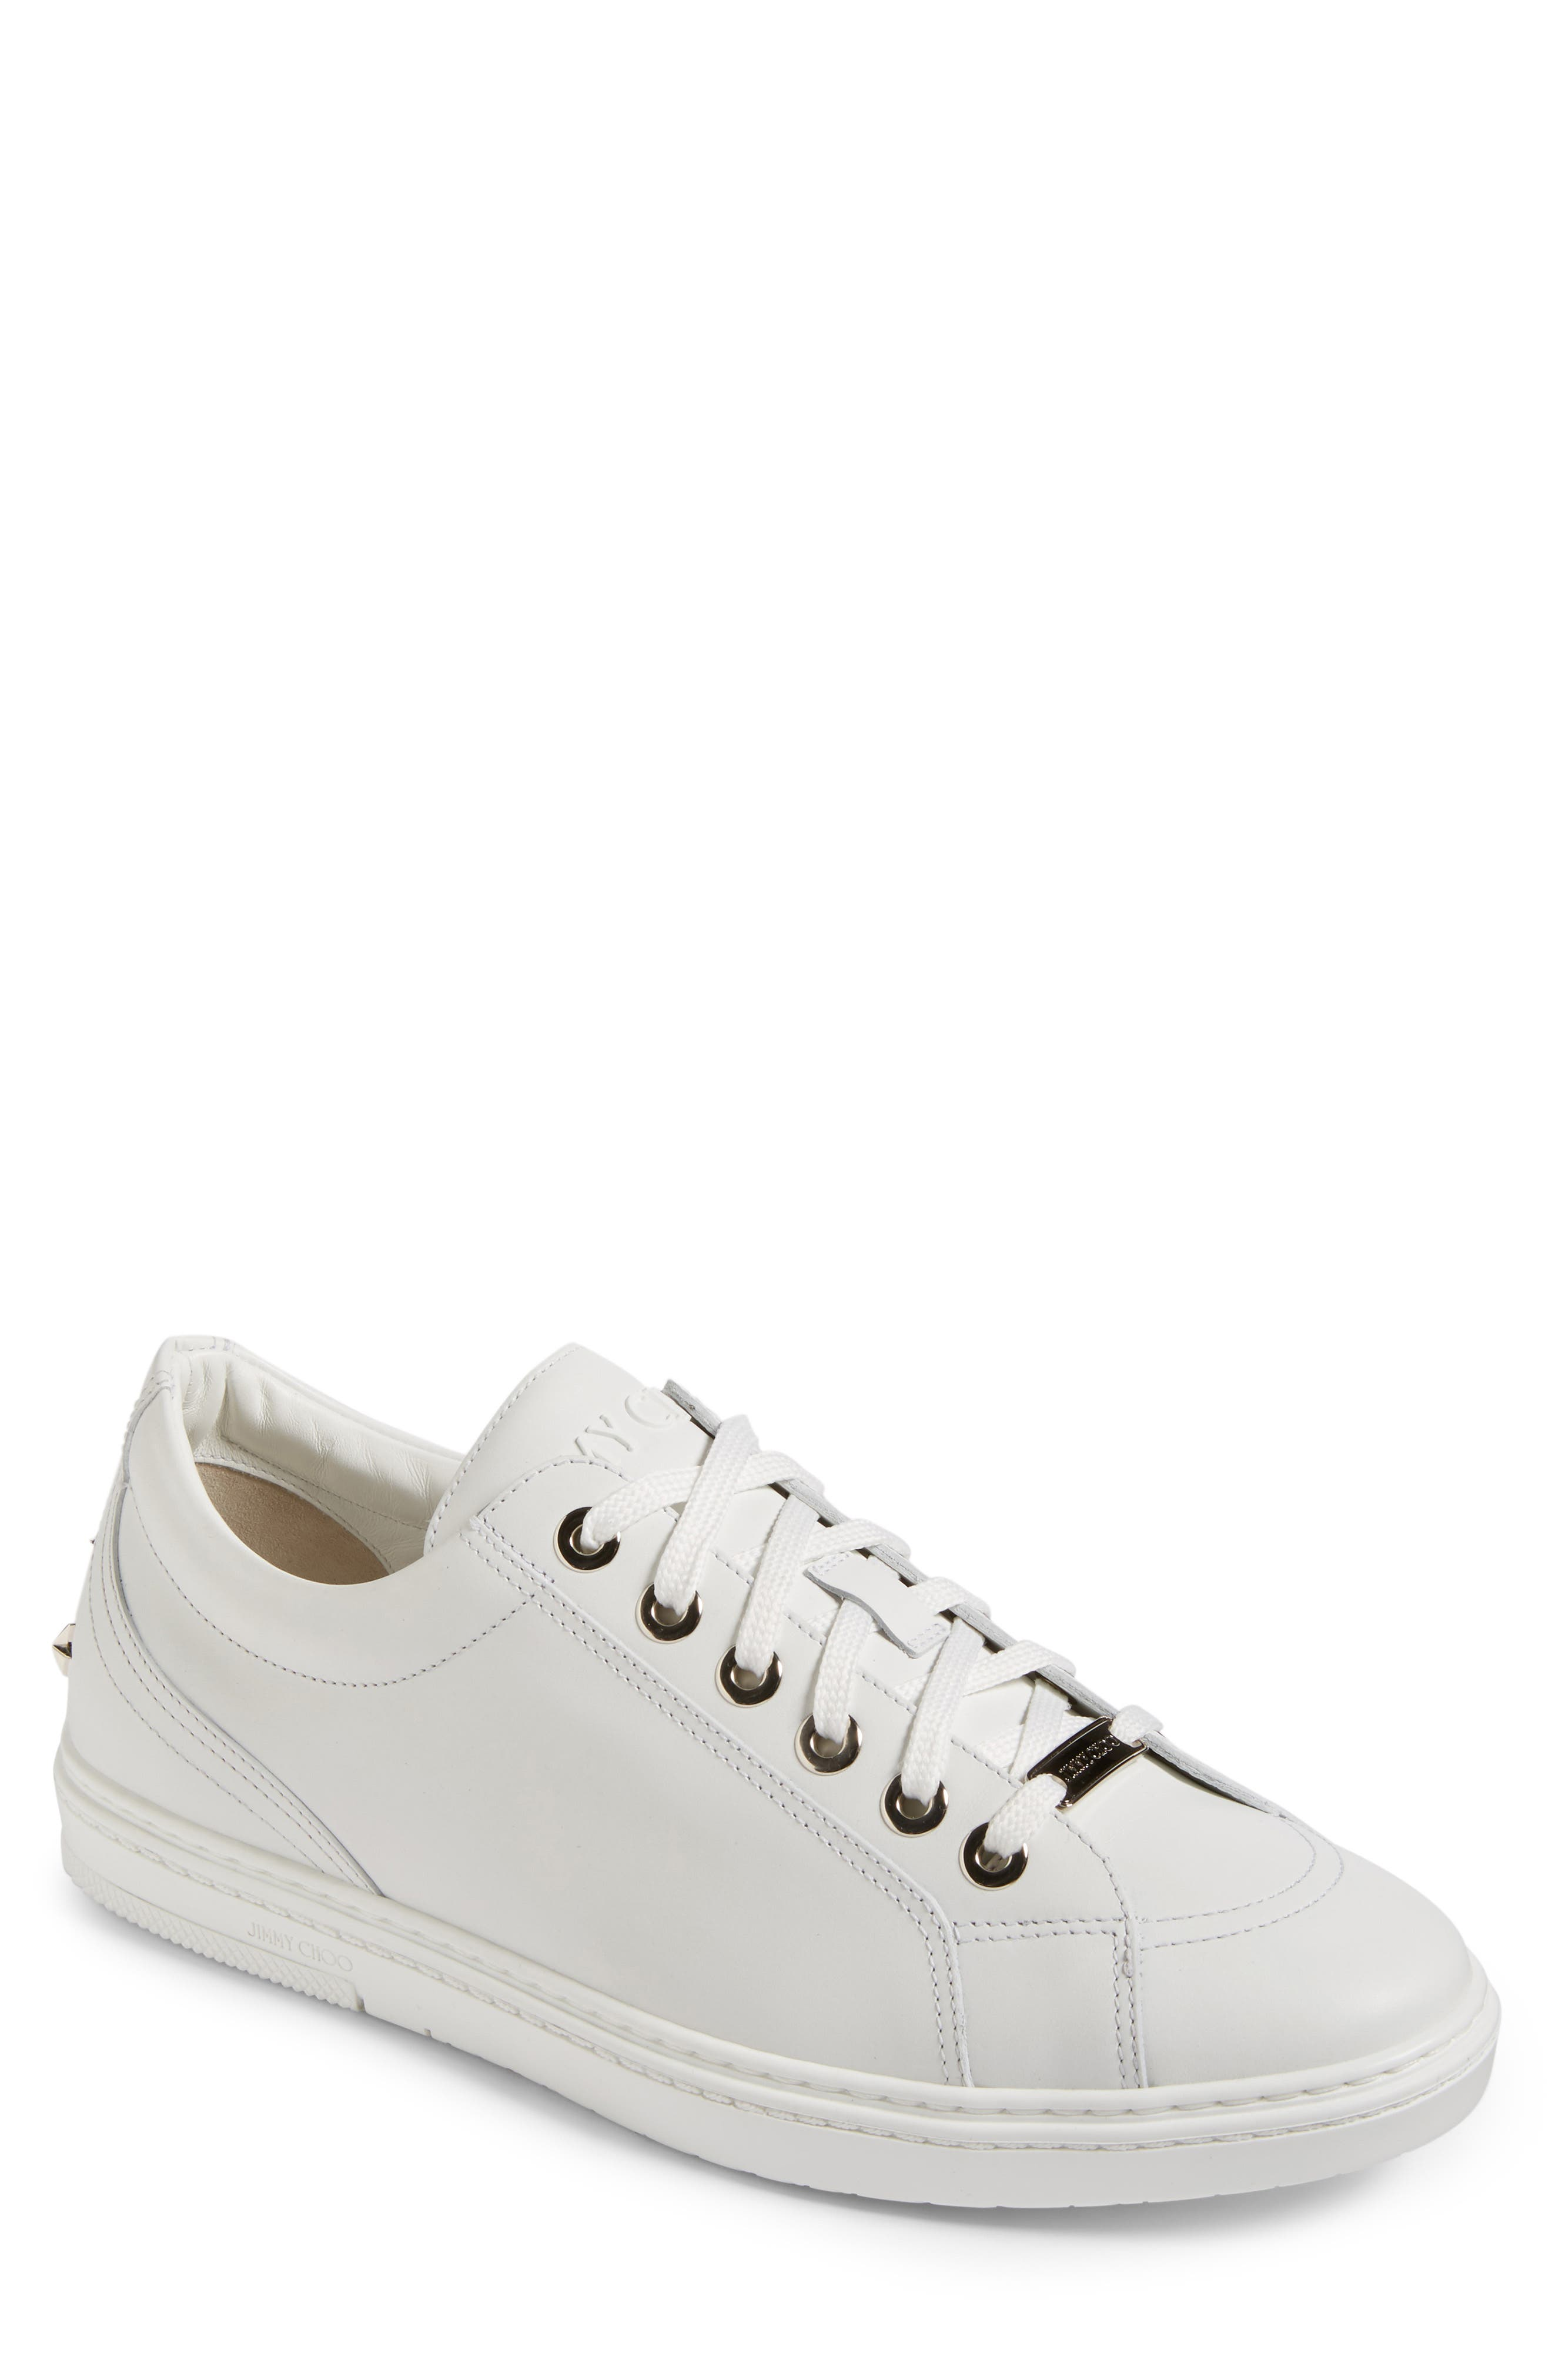 Cash Star Sneaker,                         Main,                         color, Ultra White